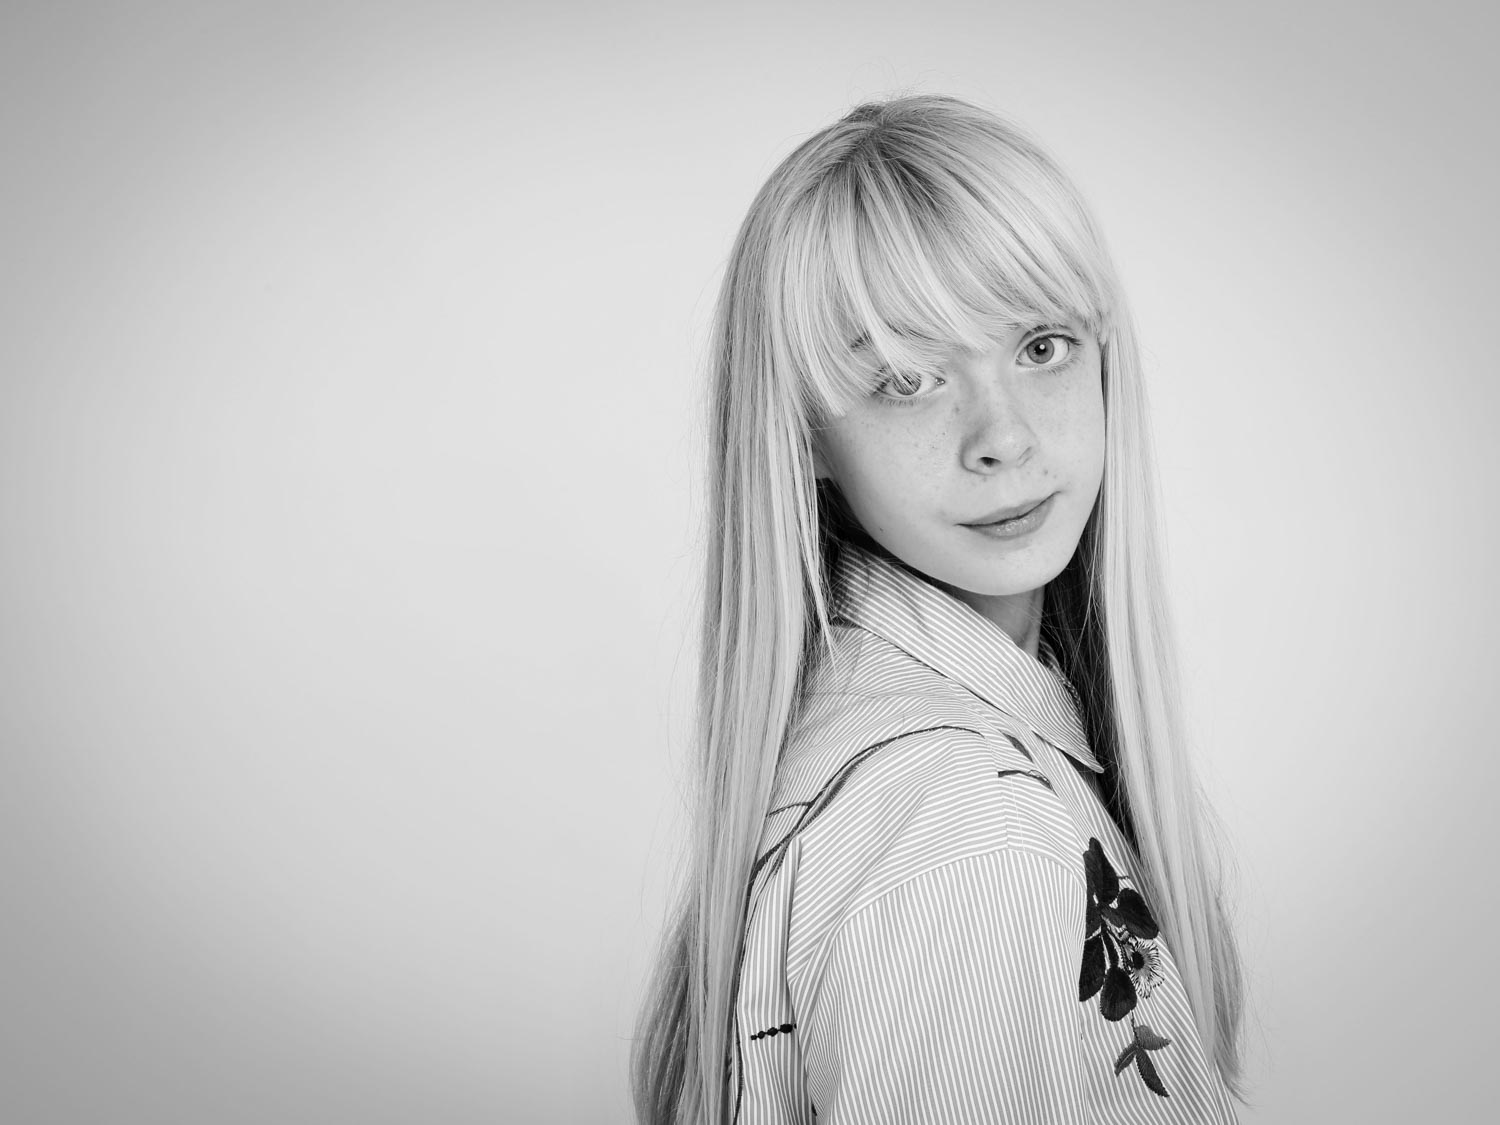 Girl with blonde fringe